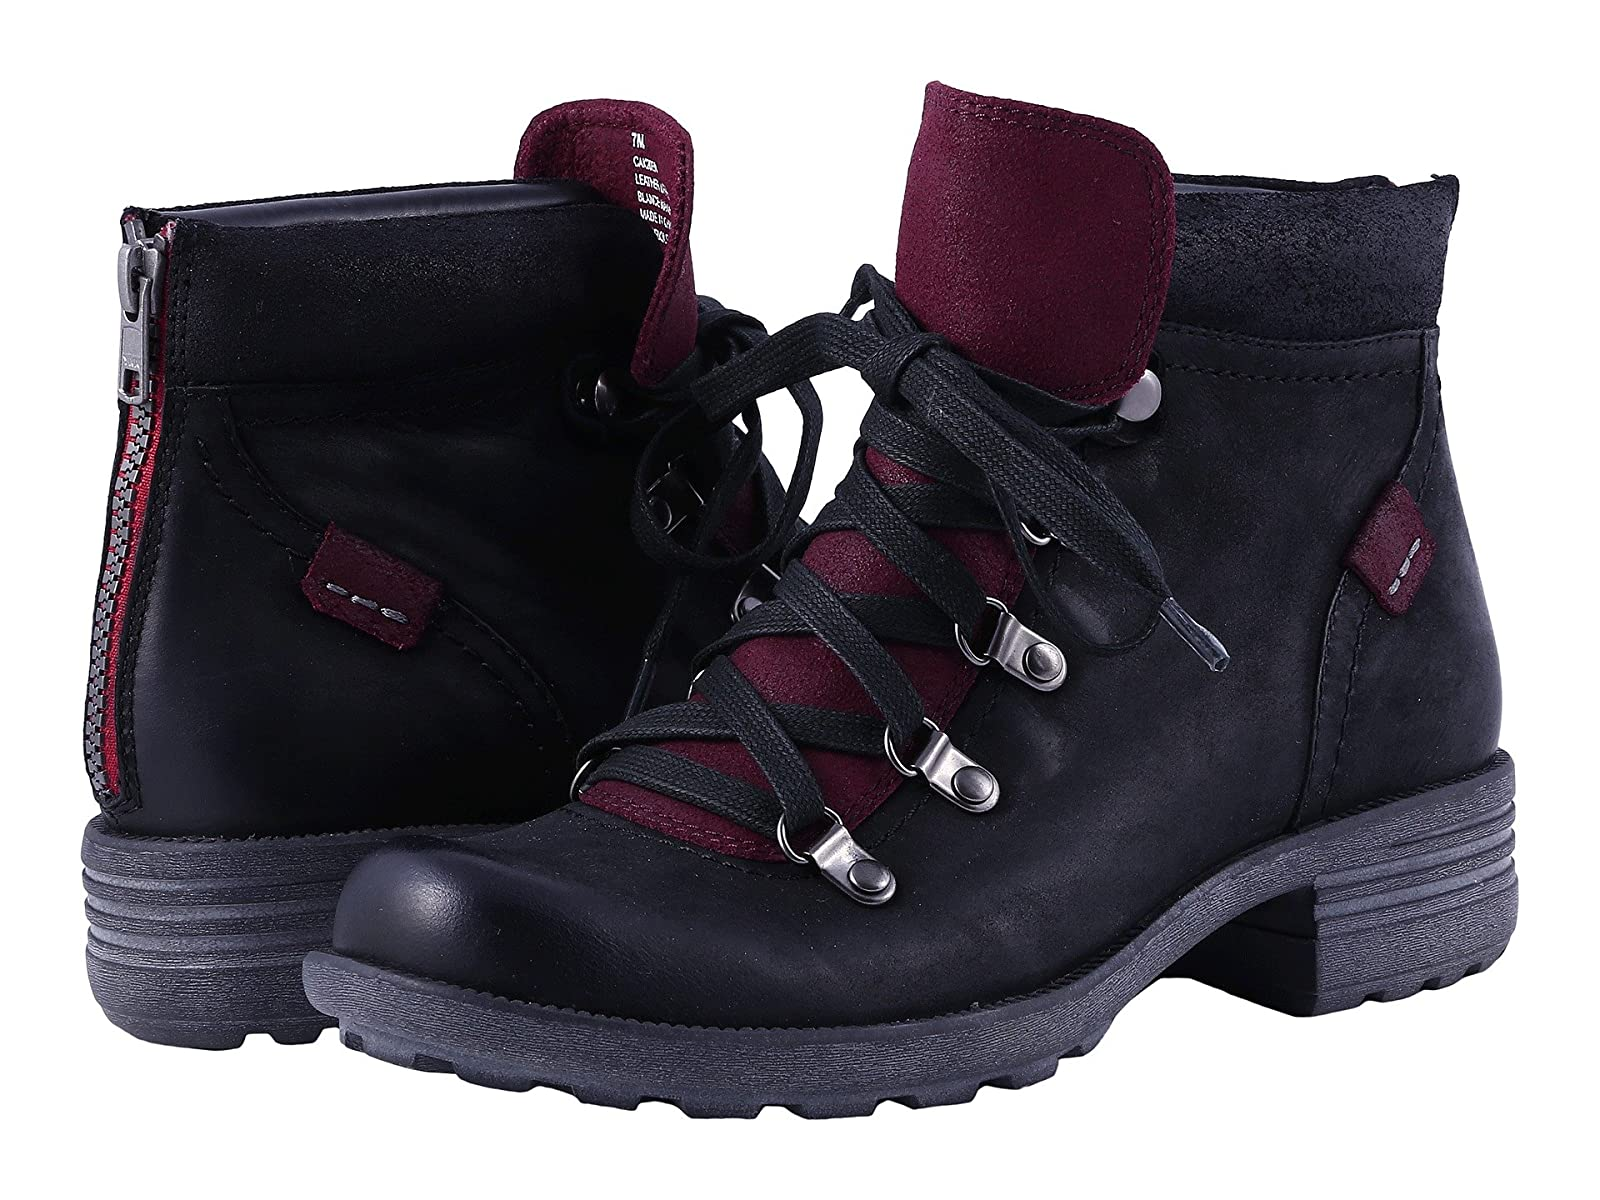 Rockport Cobb Hill Collection Cobb Hill Brunswick AplineCheap and distinctive eye-catching shoes